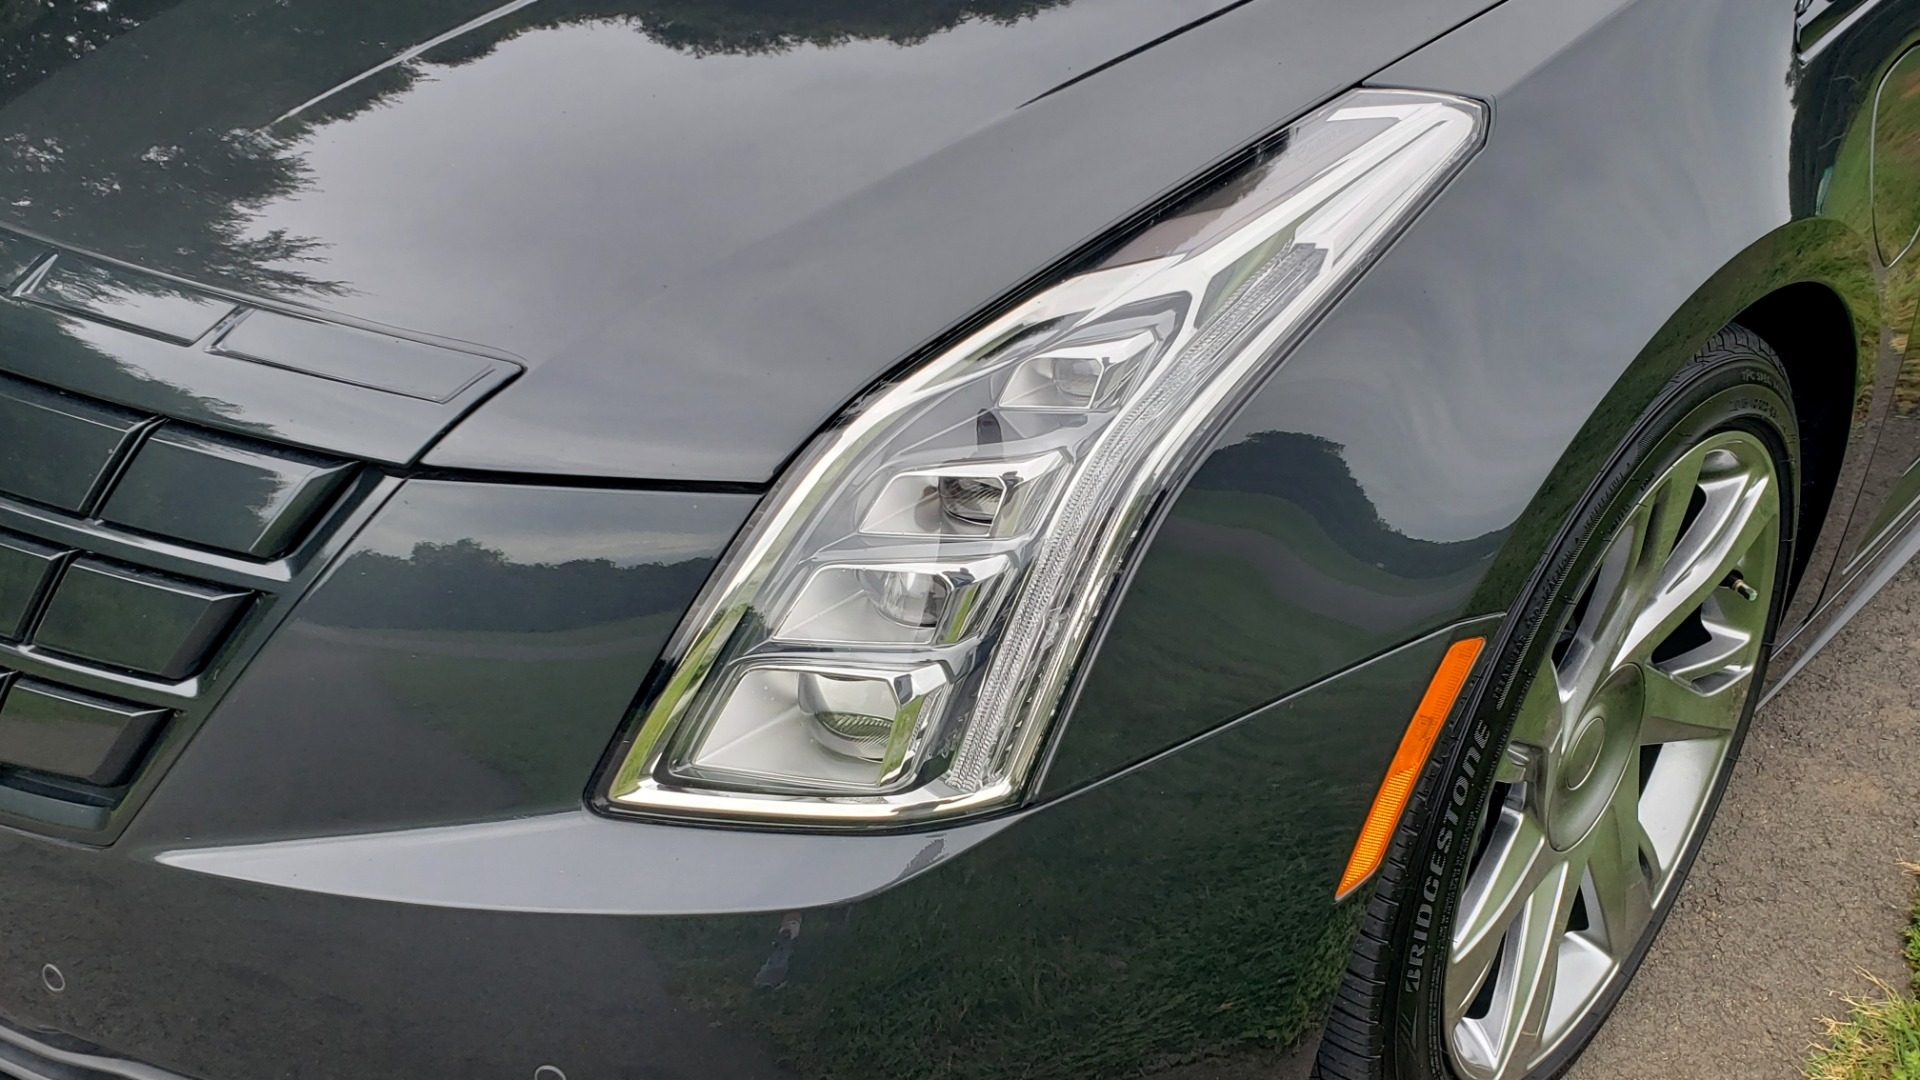 Used 2014 Cadillac ELR 2DR COUPE / HYBRID / NAV / BOSE / HEATED SEATS / REARVIEW for sale $34,000 at Formula Imports in Charlotte NC 28227 13